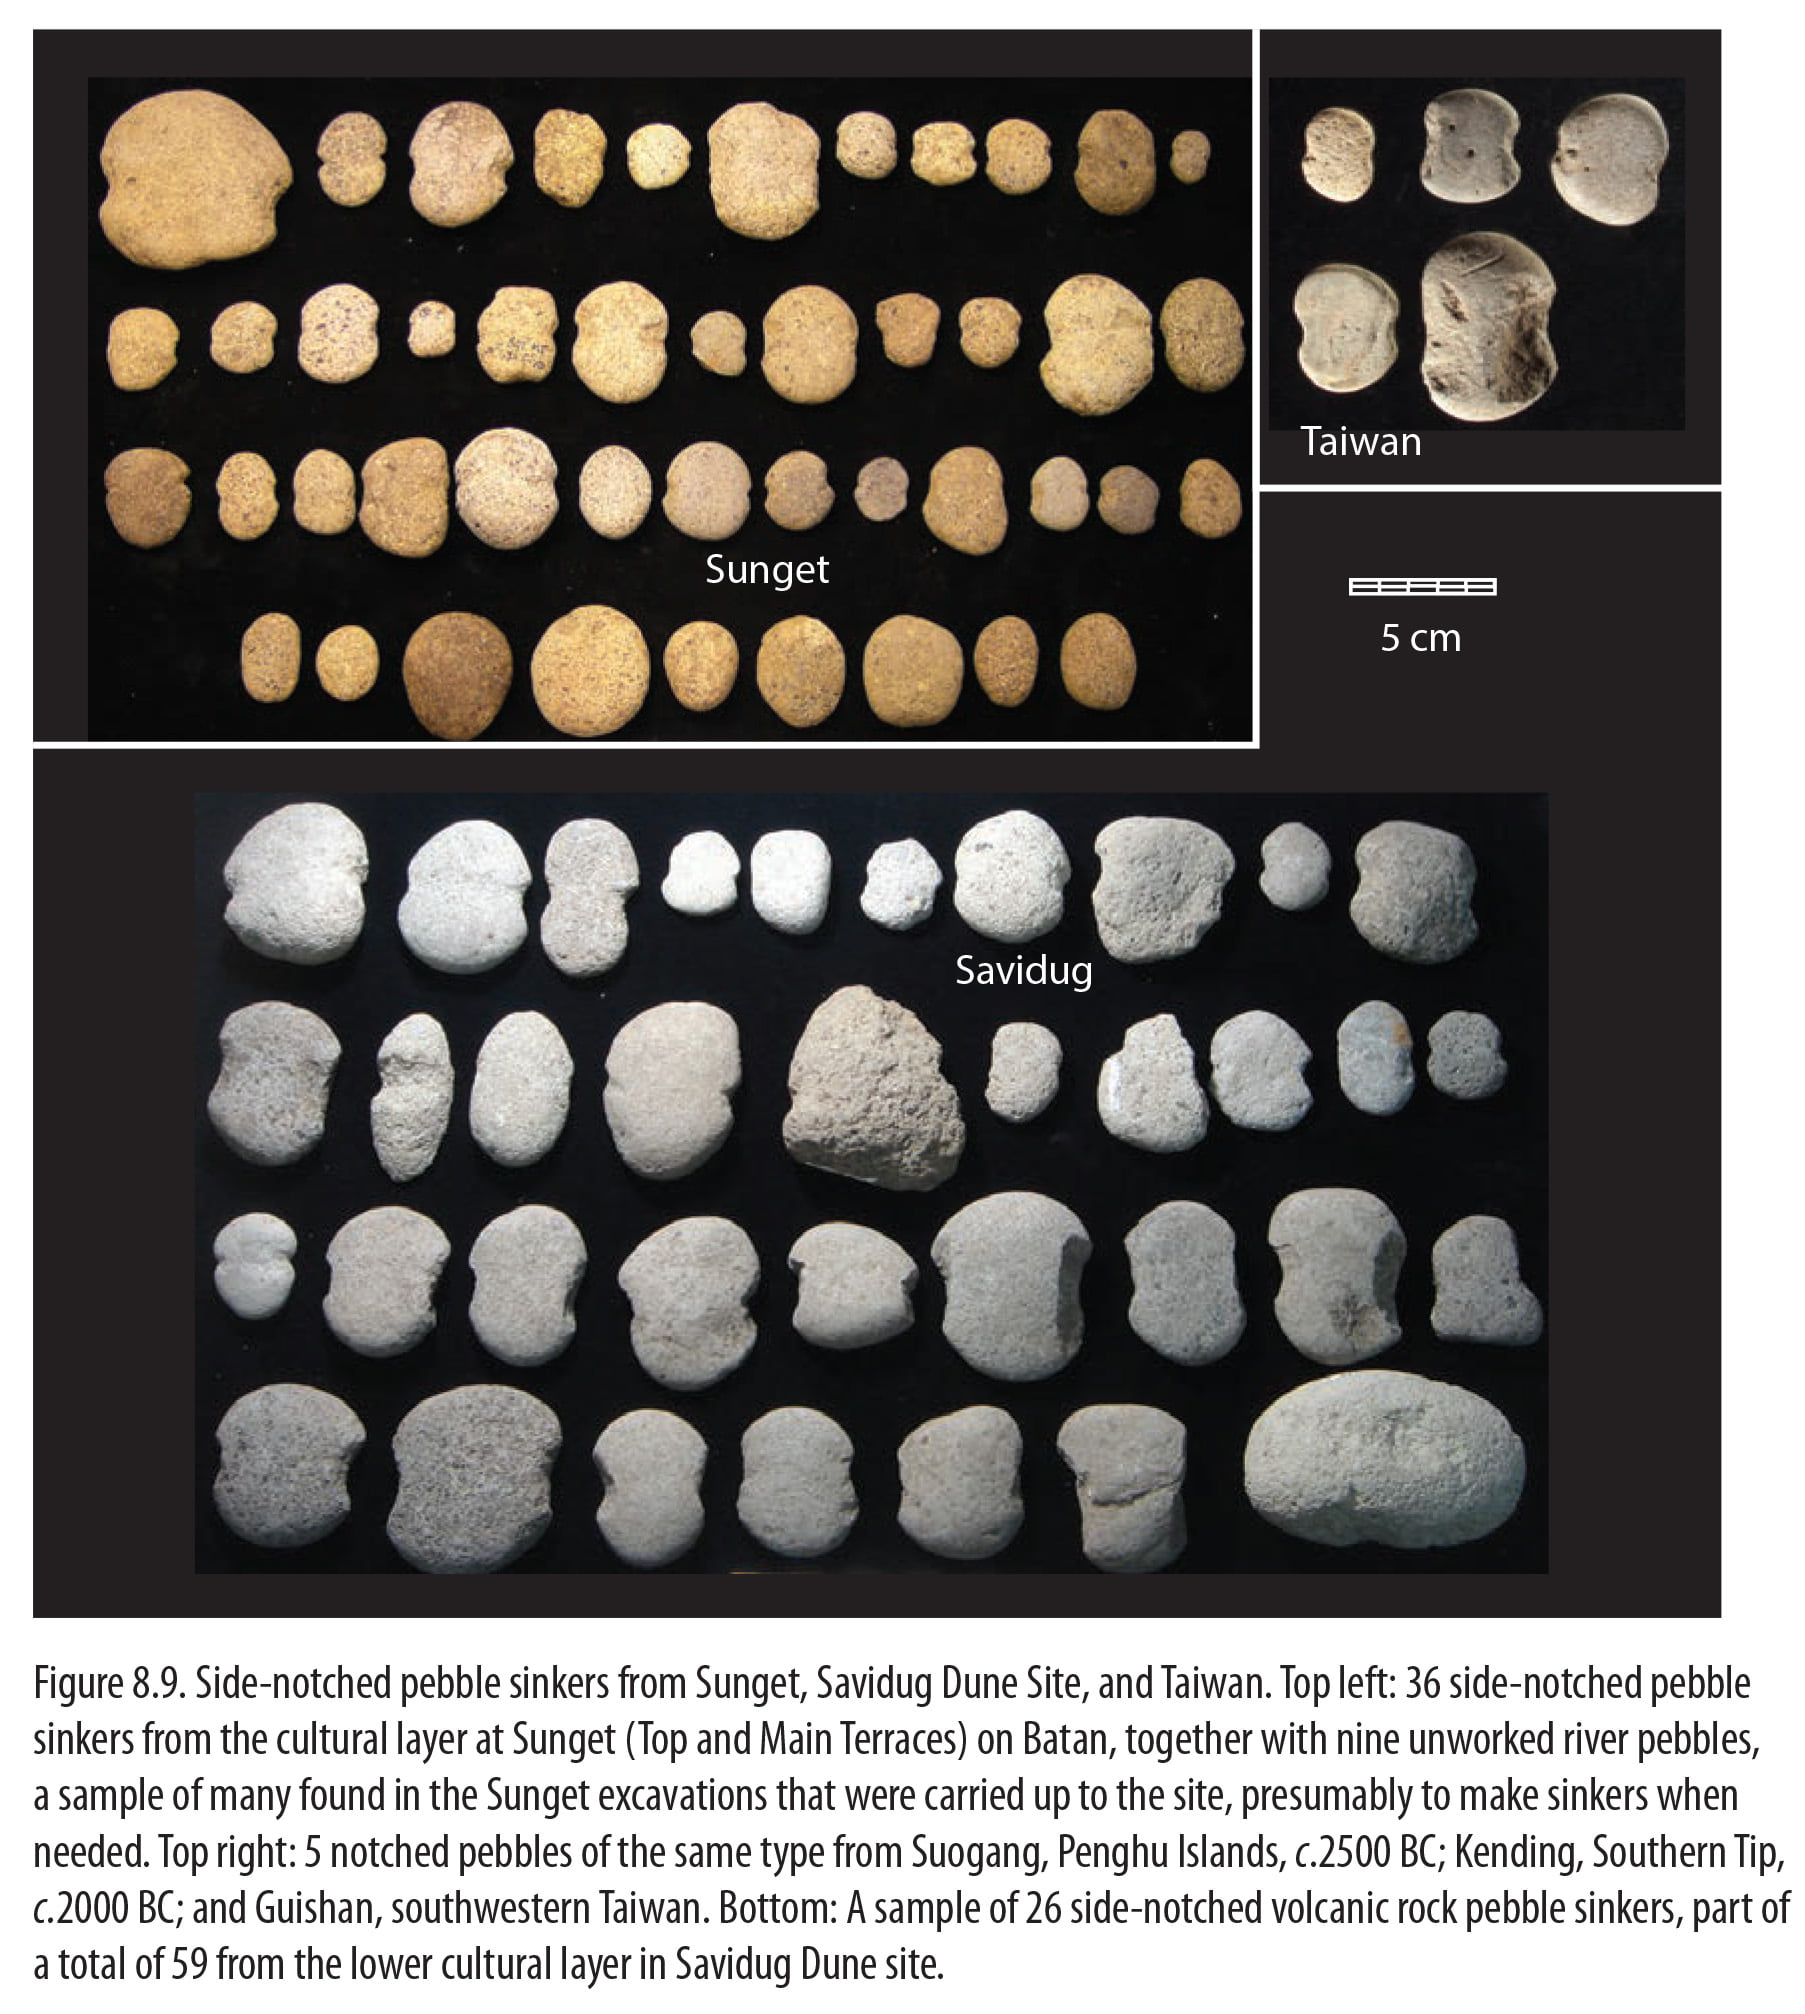 Comparison of stone sinkers from Batanes and Taiwan